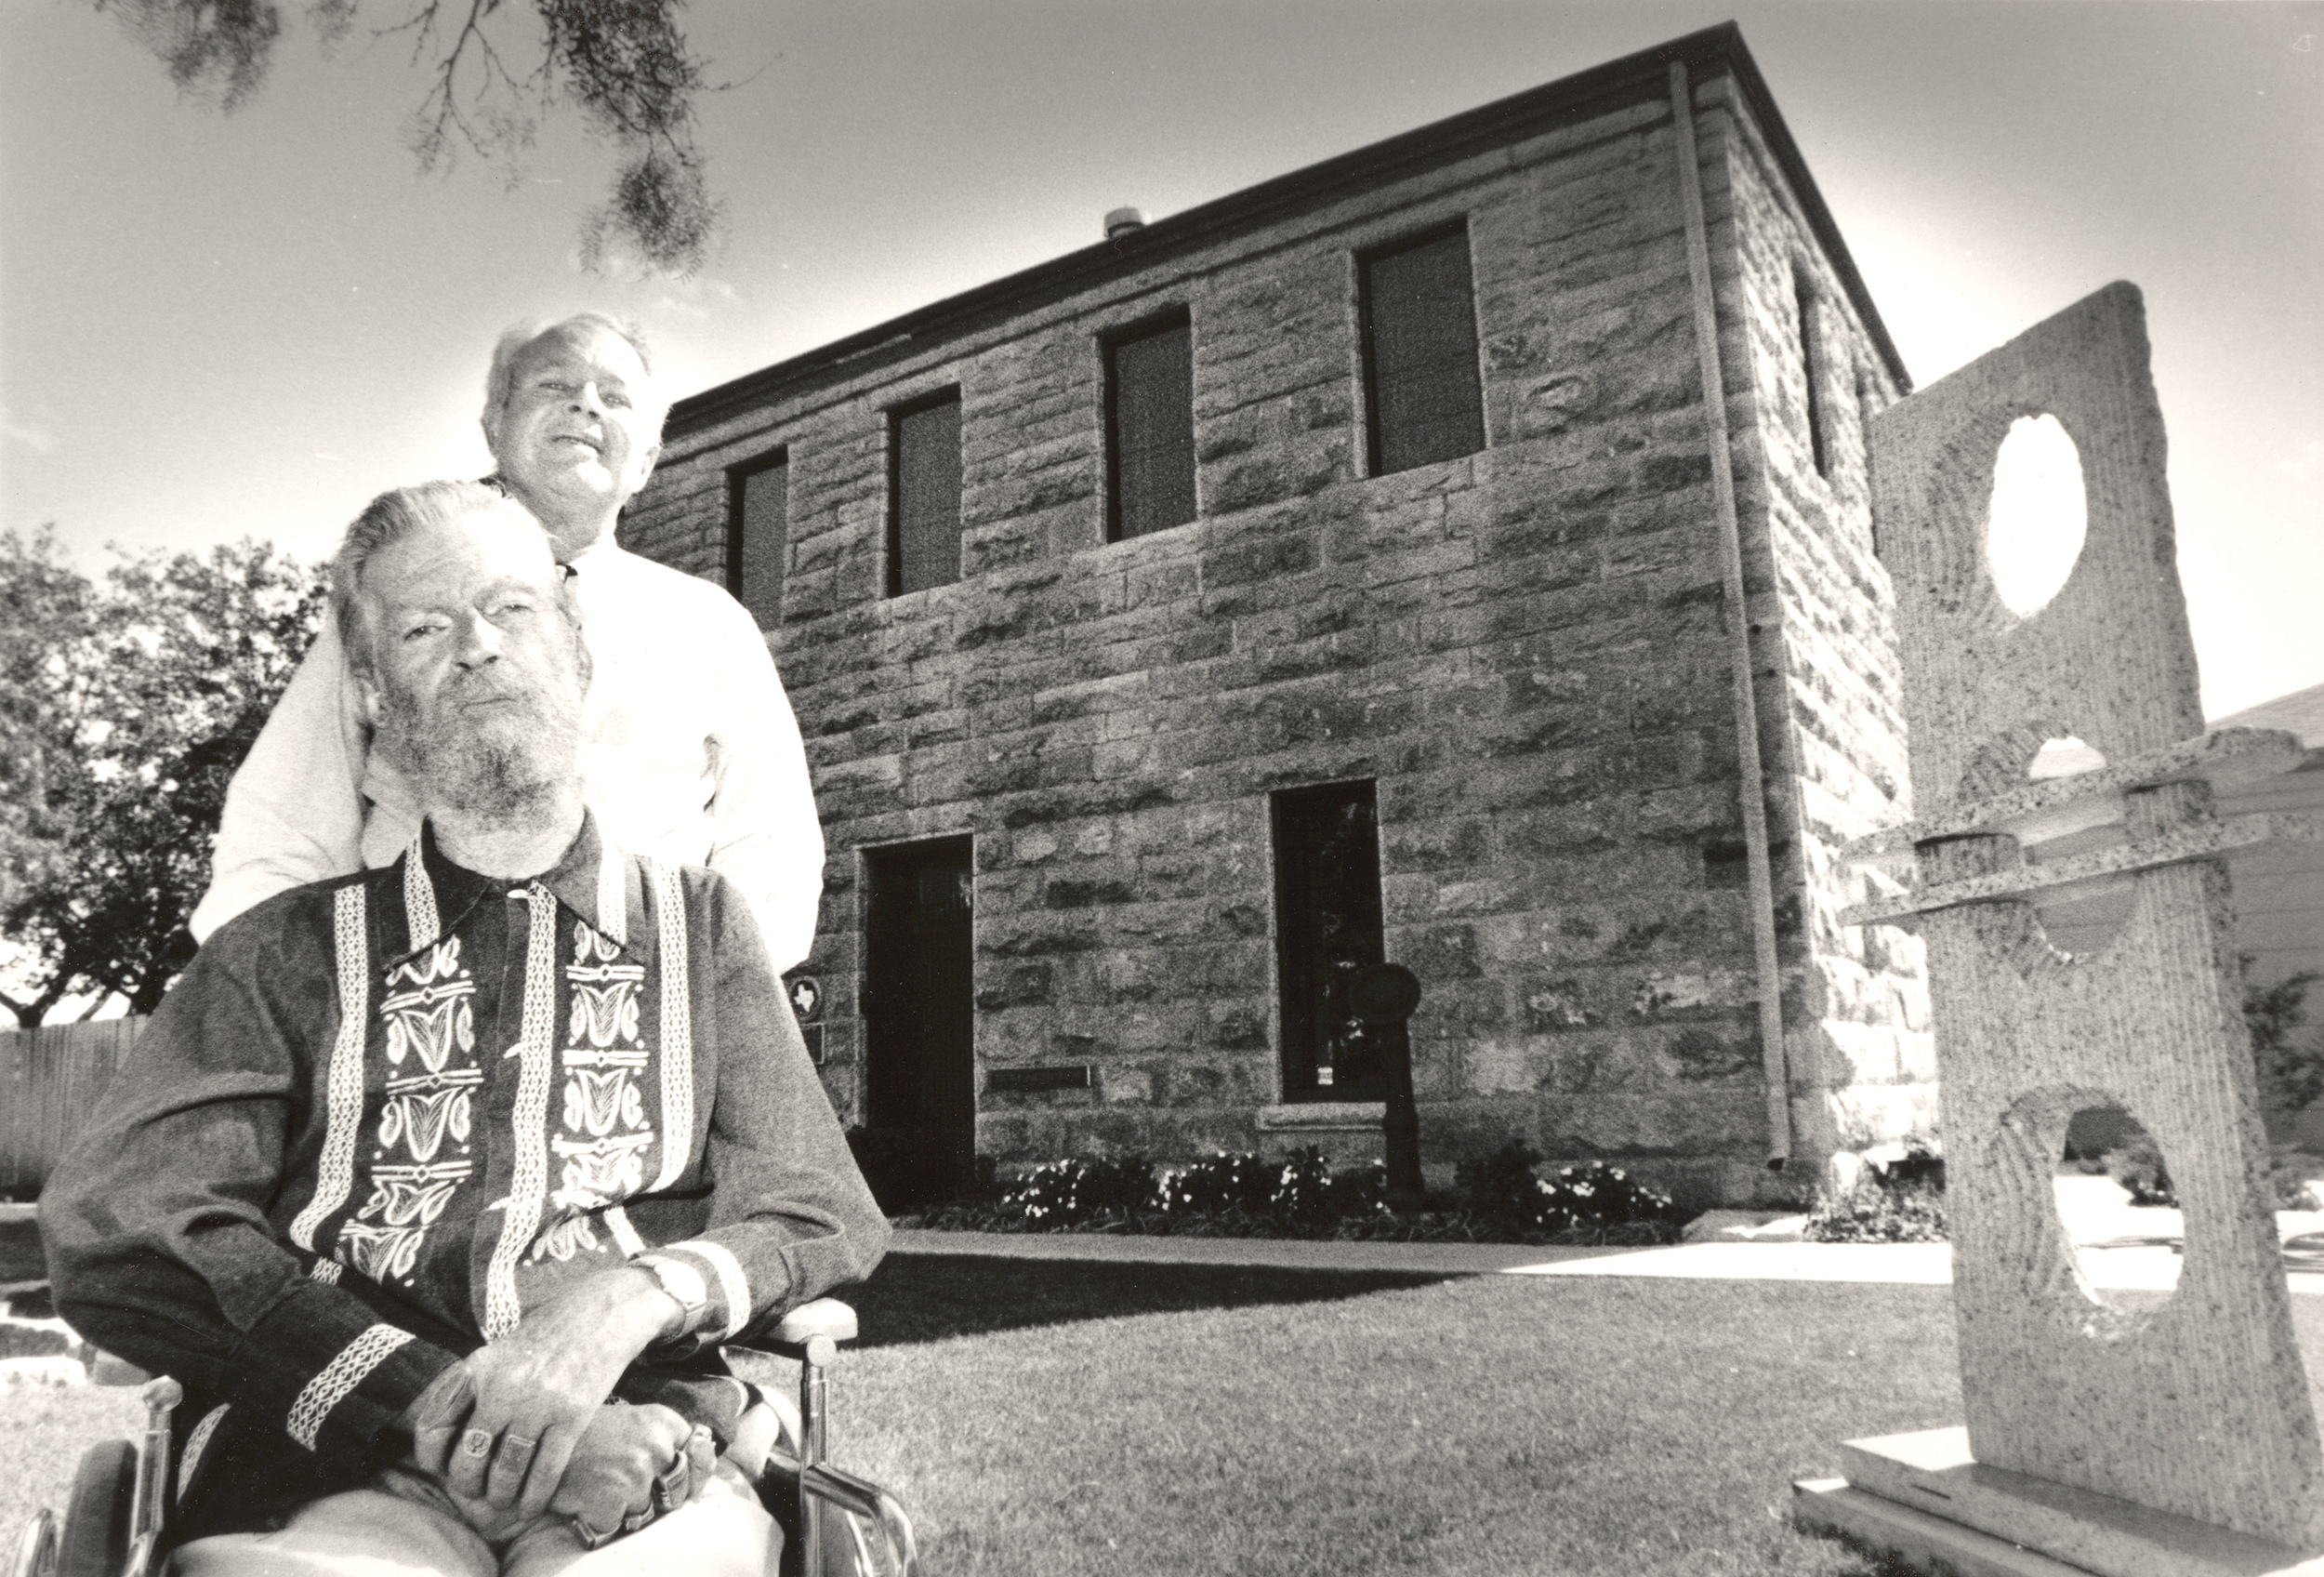 Bill Bomar (front) and cousin Reilly Nail, in front of the museum, ca. 1983.